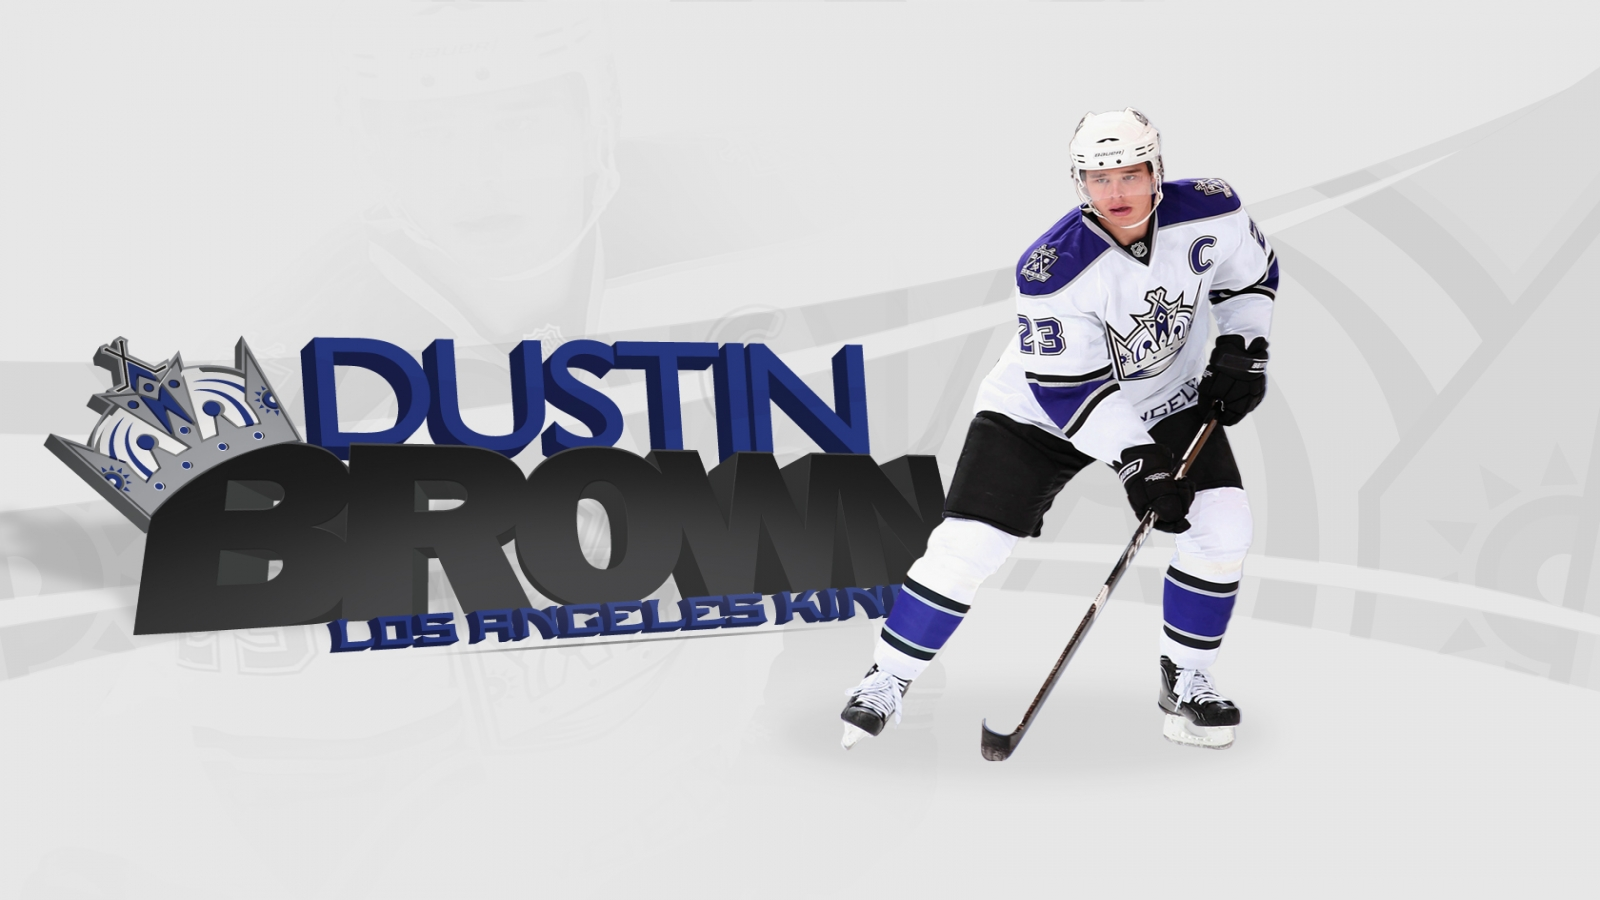 Download 1600x900 Resolution of High def dustin brown la kings HD Wallpaper